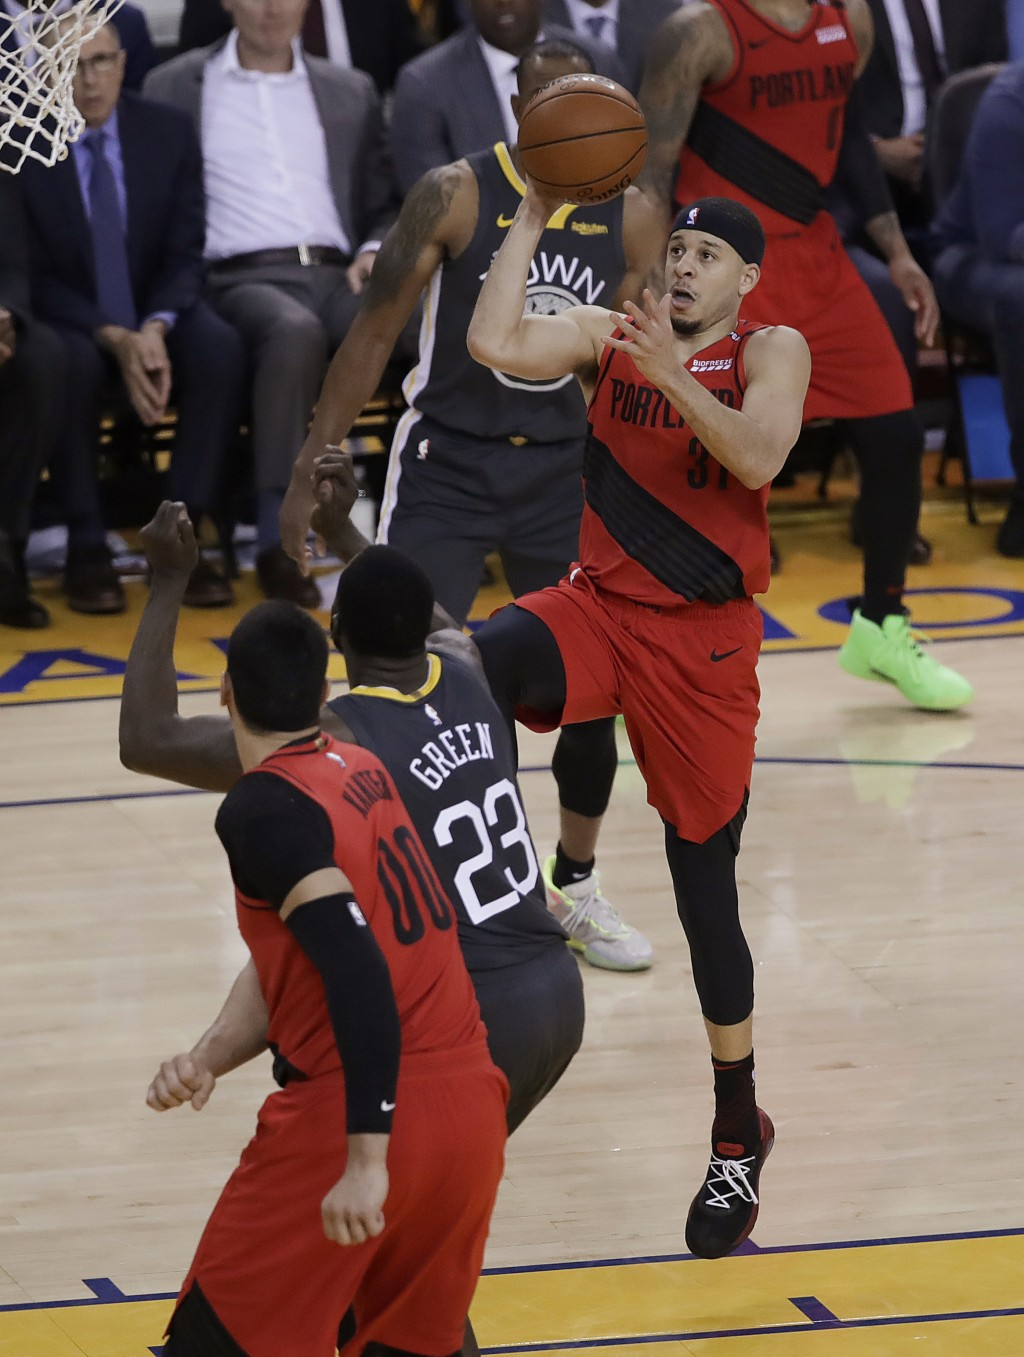 Portland Trail Blazers guard Seth Curry (31) shoots against the Golden State Warriors during the first half of Game 2 of the NBA basketball playoffs W